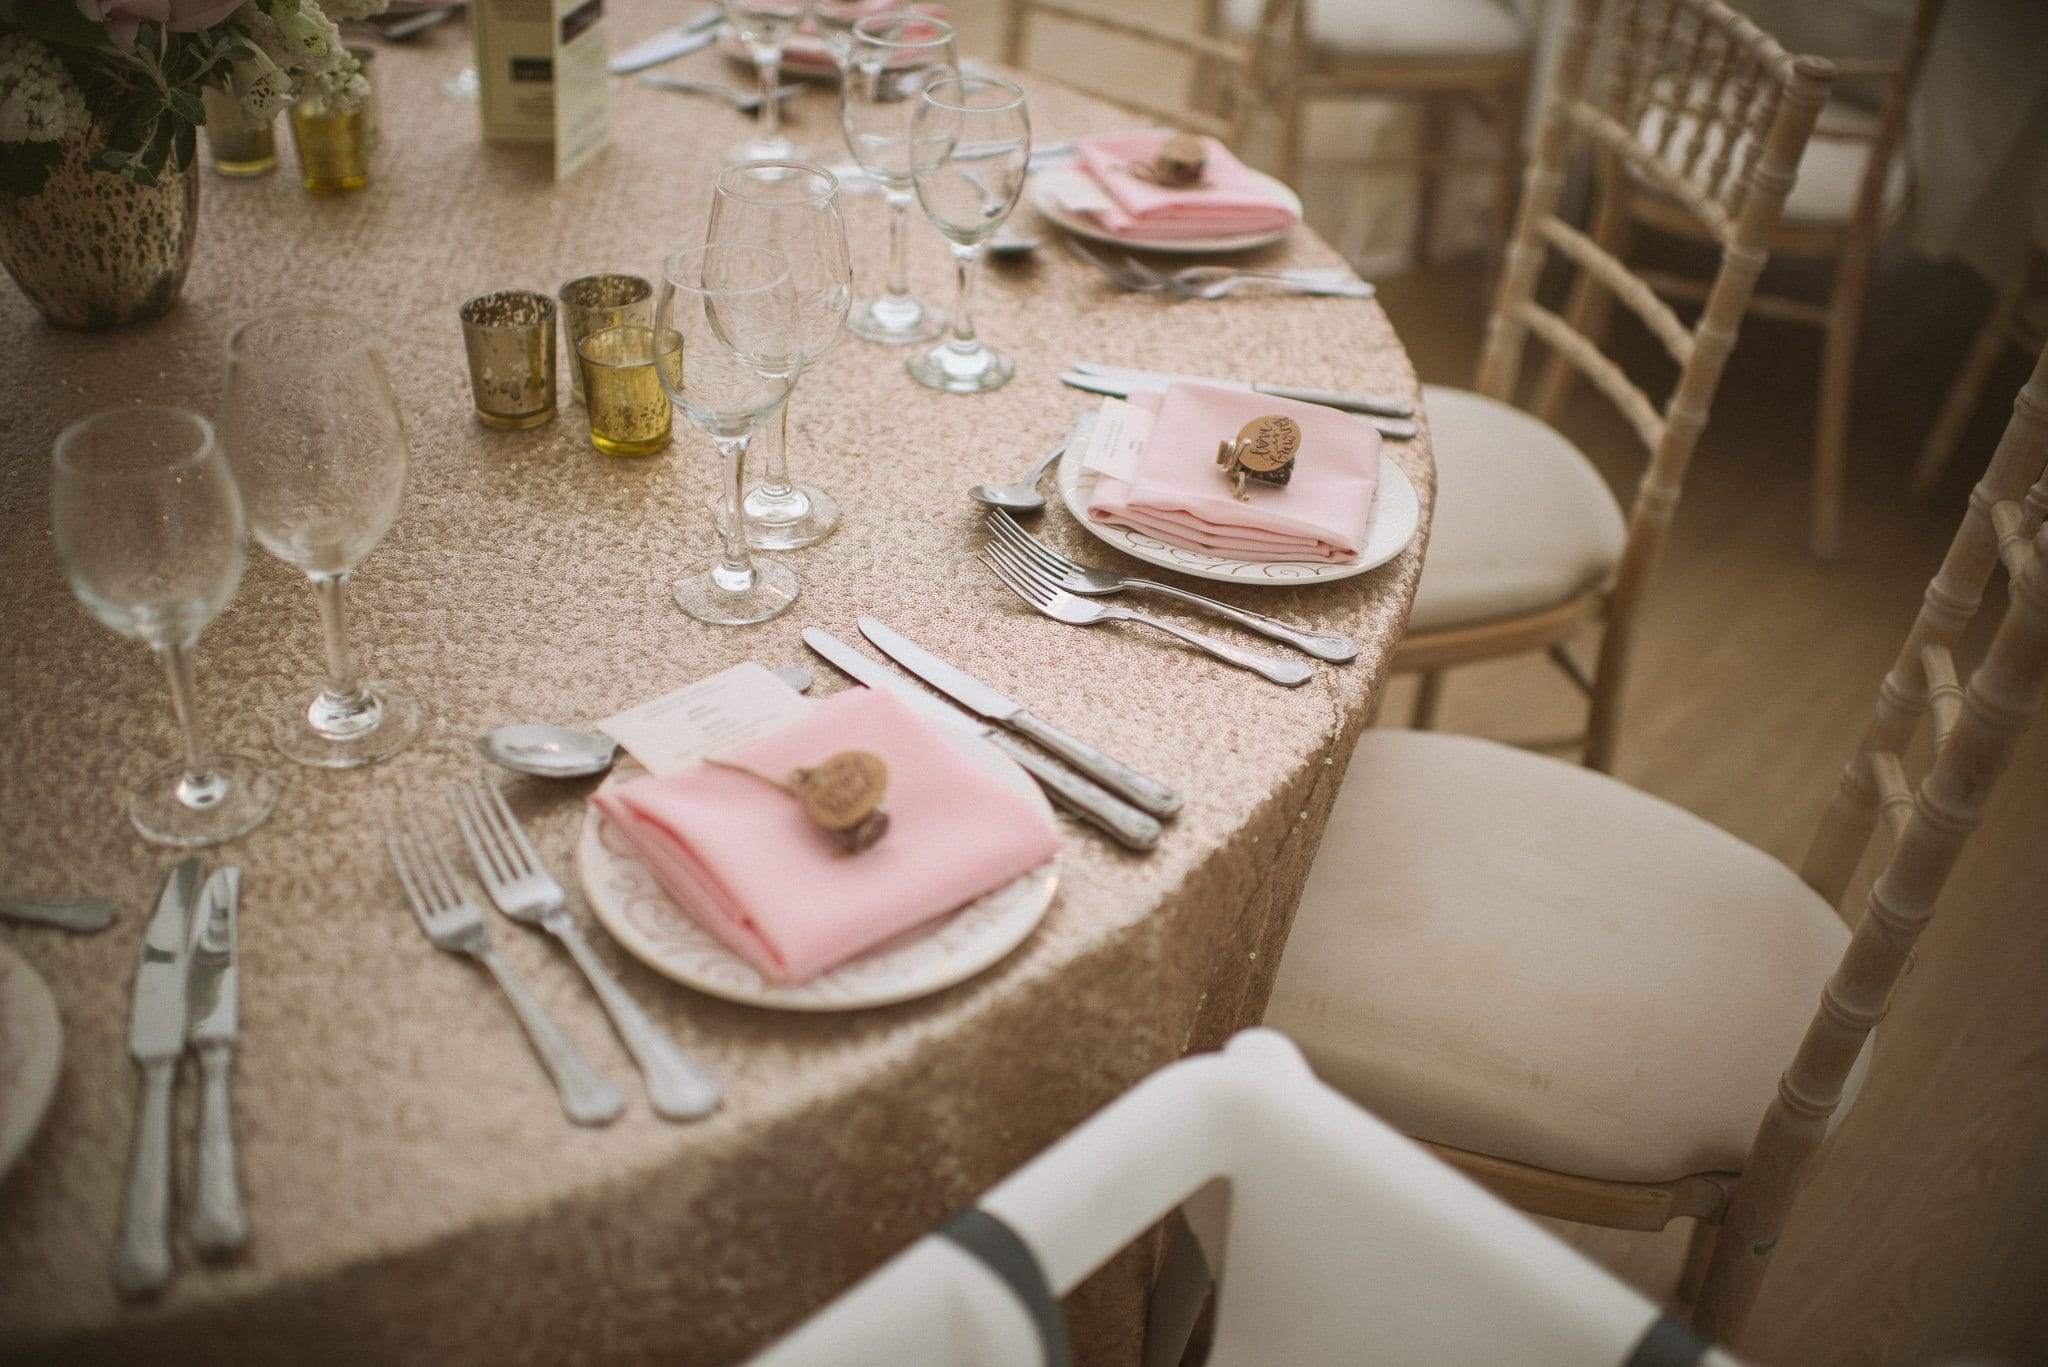 A close up of the tables at Sorayya and Usman's wedding reception, showing gold sequin tablecloth and pale pink napkins.